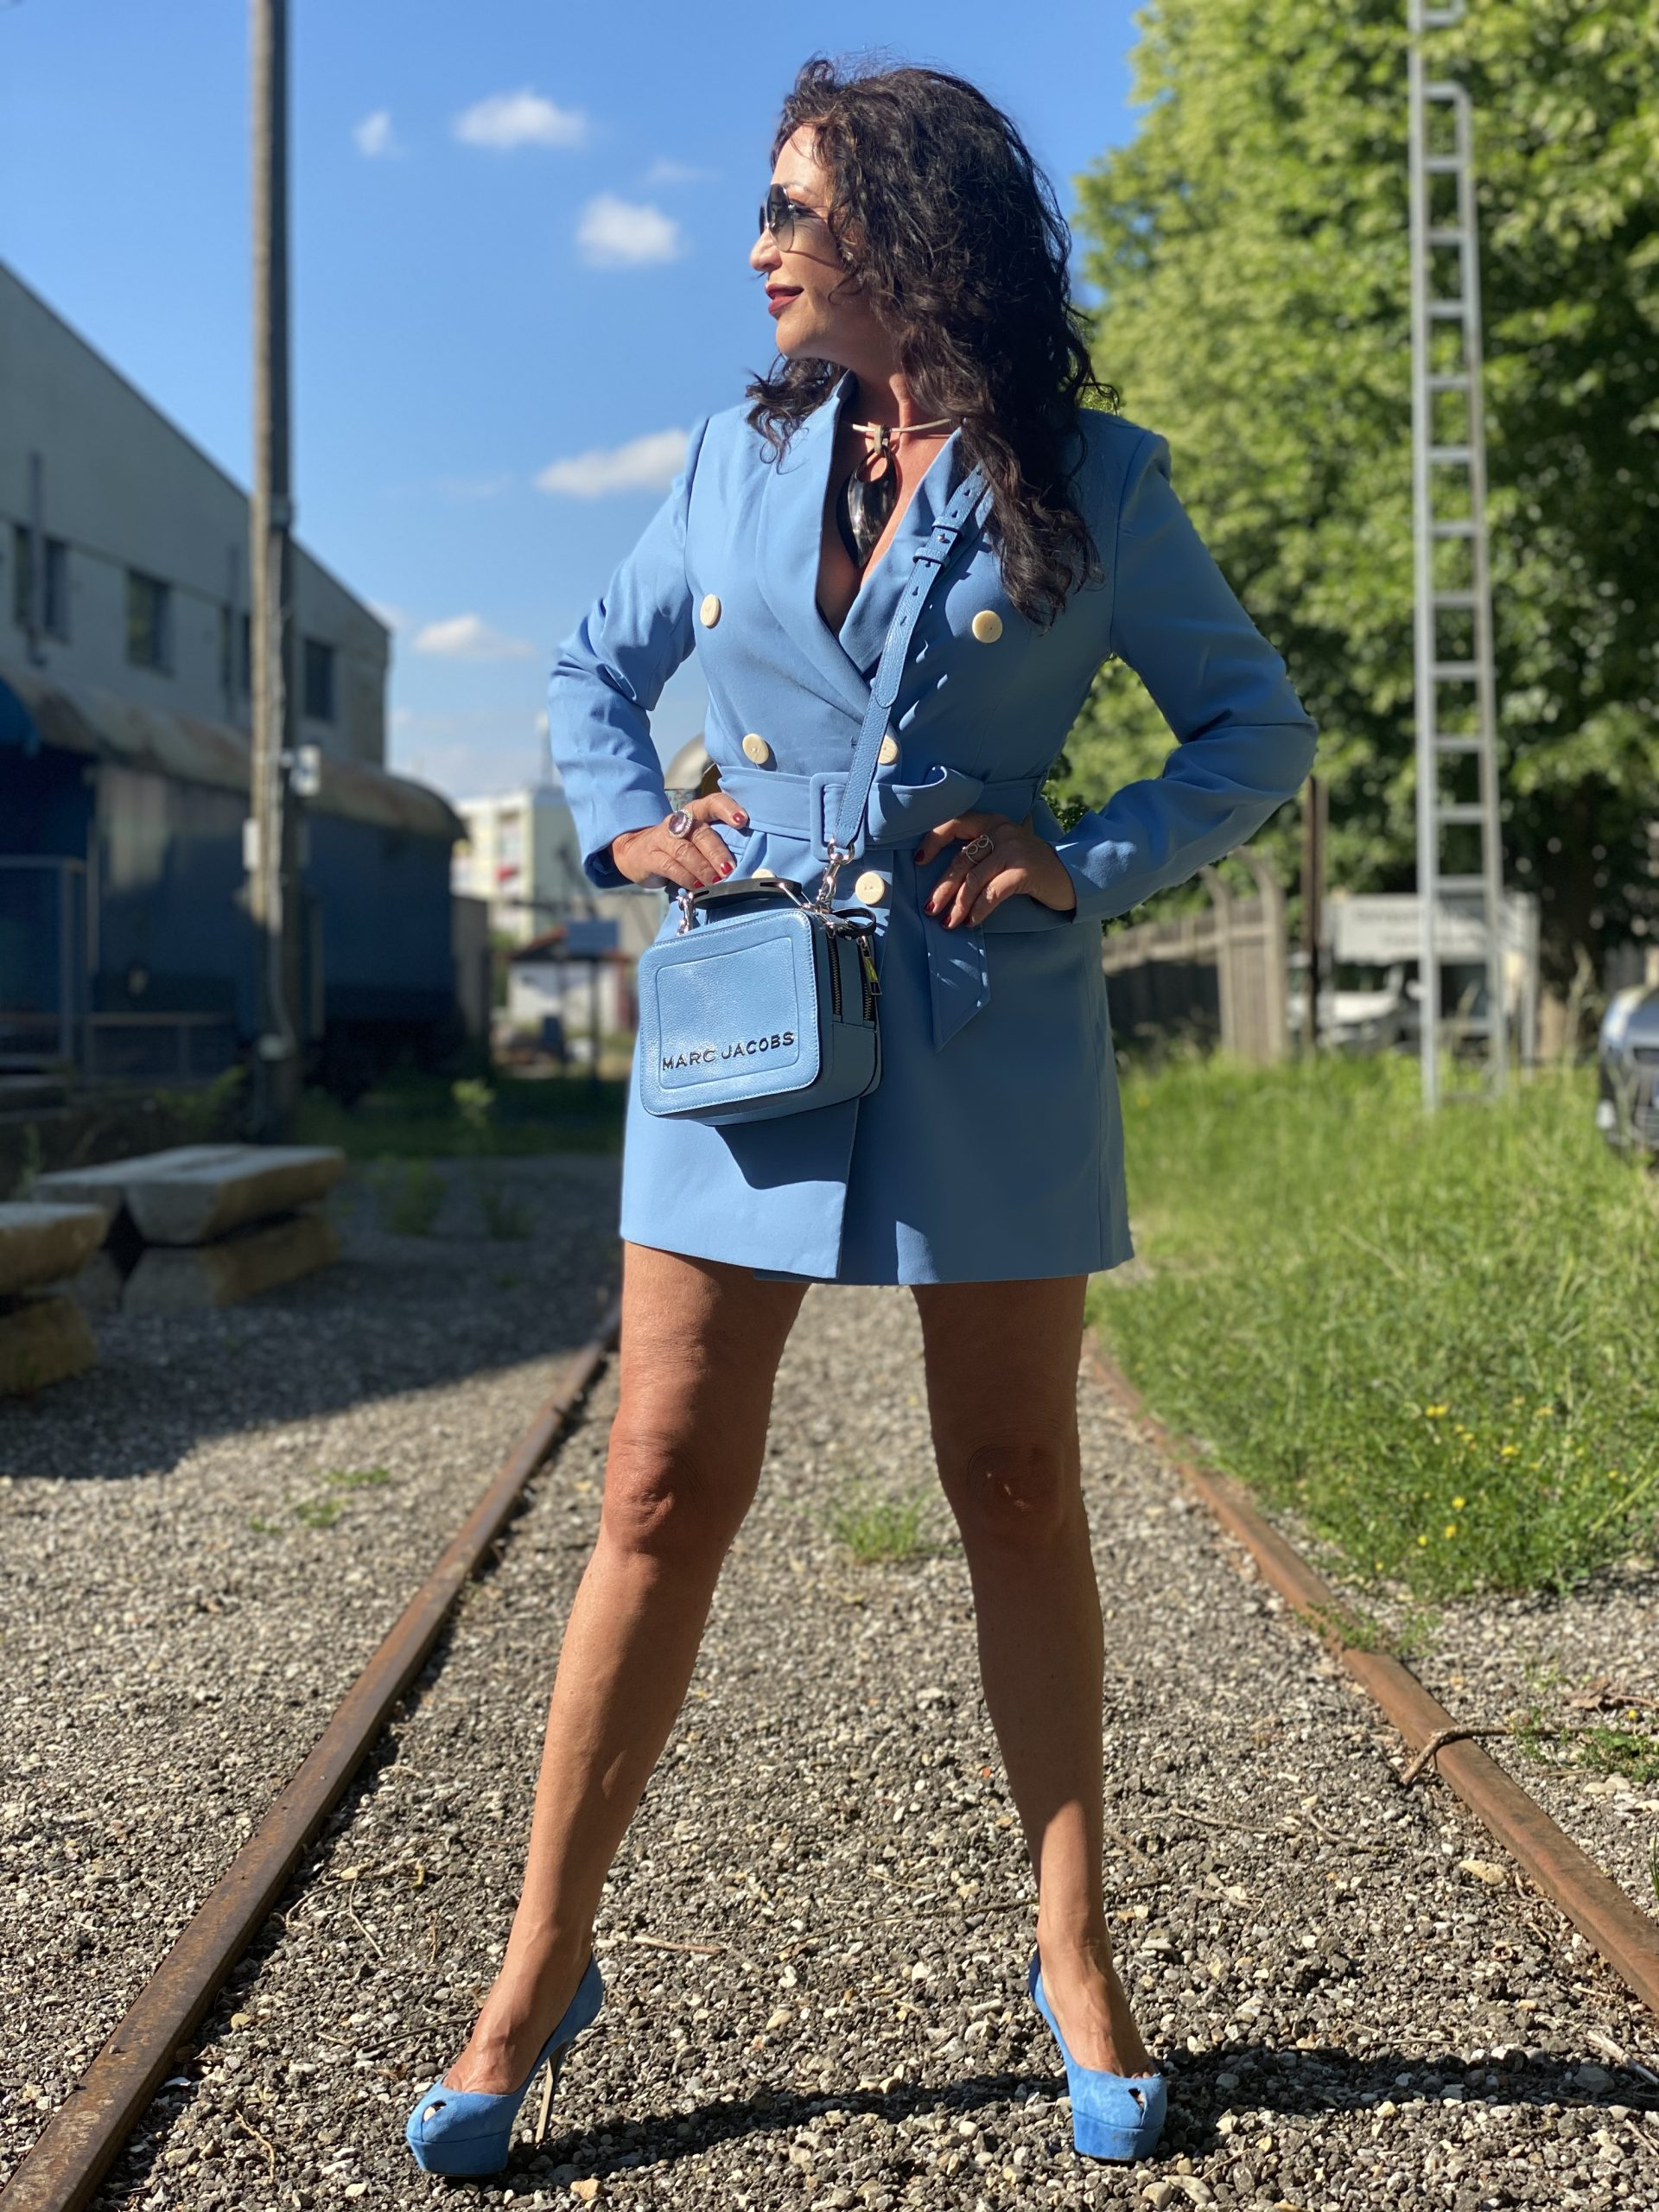 Blazerdress Stradivarius, Marc Jacobs bag, Sergio Rossi shoes, Ray Ban shades, shoelover, eyewearblogger, mystyle, over50, ageless fashion, ageless style, heels, cochastyle, Fashionblog Augsburg, streetstyle, streetfashion, bloggerstyle